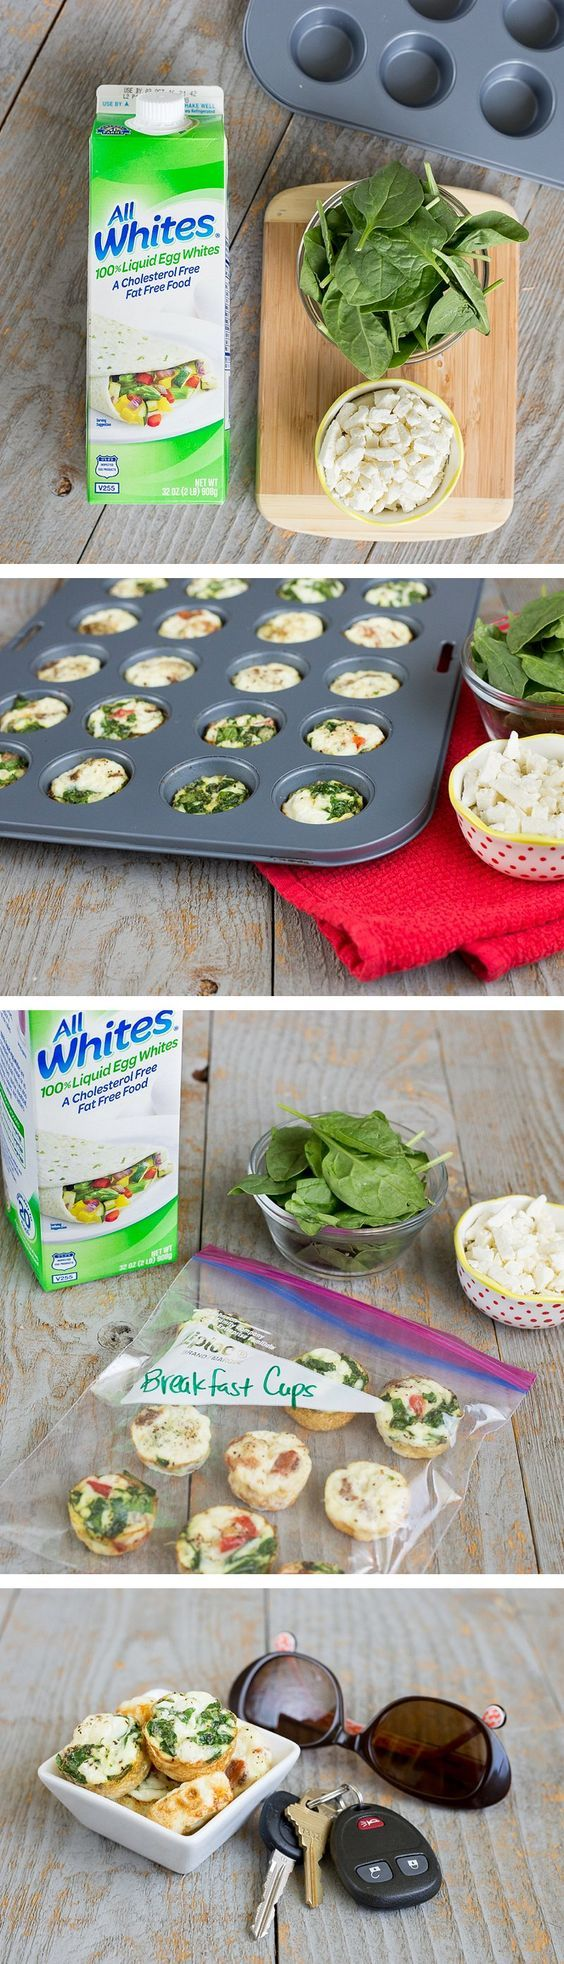 Here are 5 insanely easy breakfast recipes that will give you a morning boost. This healthy Baked Spinach & Feta Egg White Omelet Cups recipe is packed full of protein and is a quick on-the-go breakfast snack. You can make one batch to last a full week. #sponsored *Crazy easy way to start your day with eggs